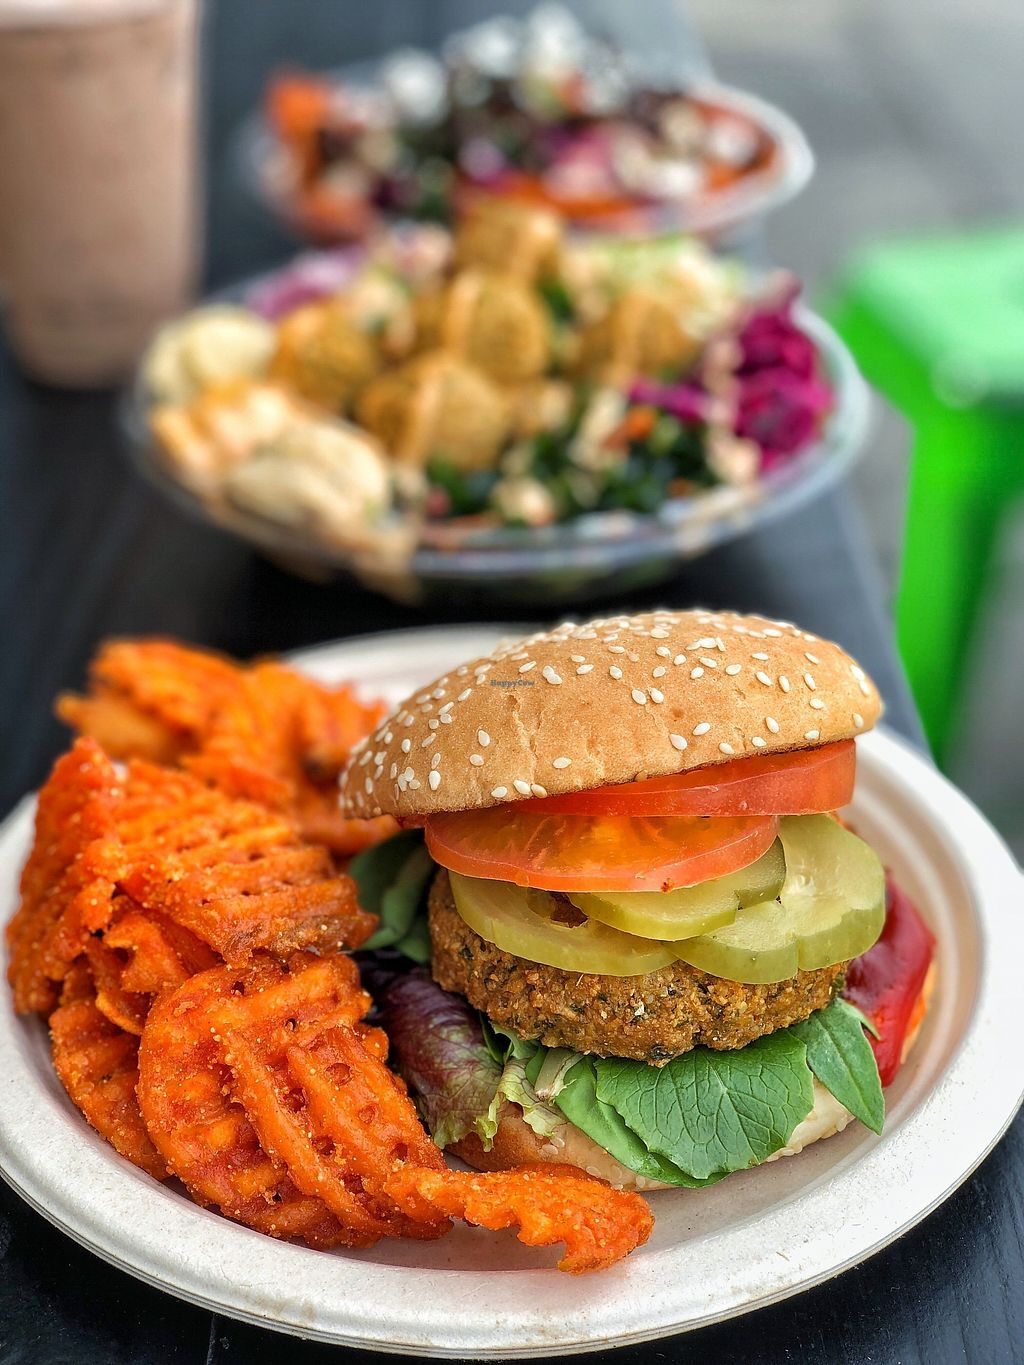 """Photo of The Hummus Republic  by <a href=""""/members/profile/JordynWeekly"""">JordynWeekly</a> <br/>Vegan Earth burger  <br/> February 14, 2018  - <a href='/contact/abuse/image/102951/359400'>Report</a>"""